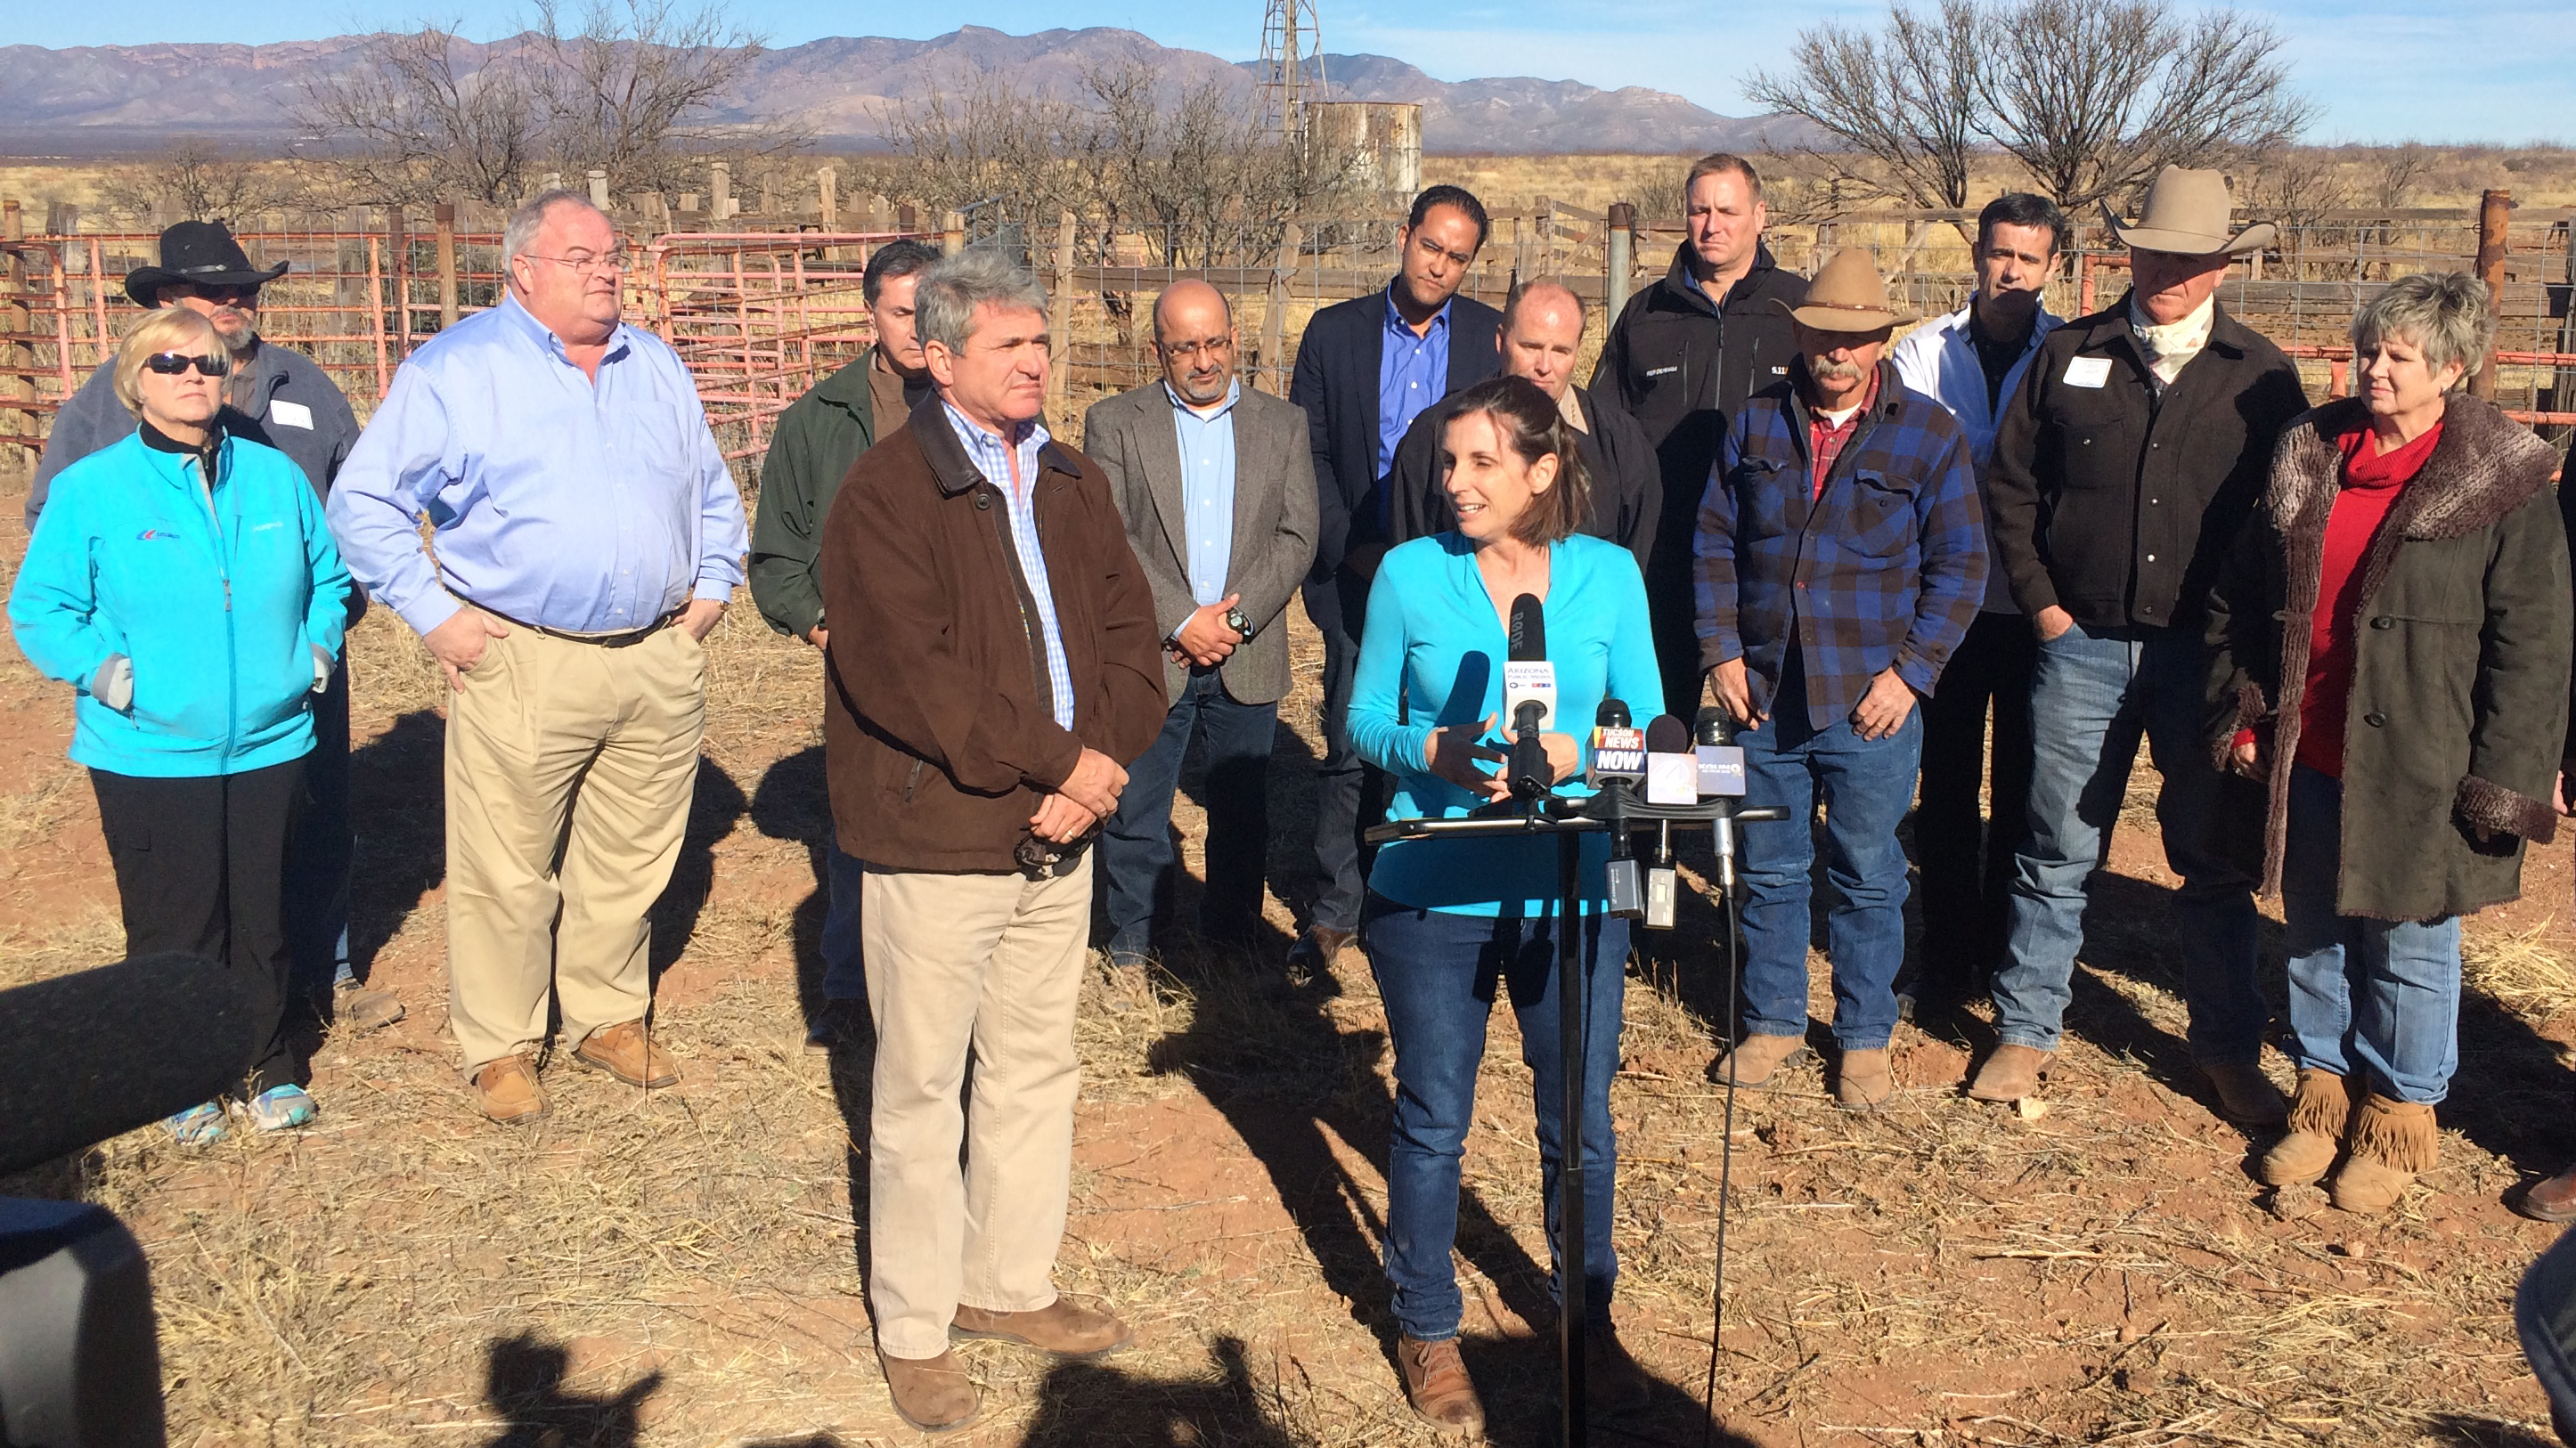 Rep. Martha McSally, R-Tucson, and members of the House Homeland Security Committee meet with members of the media on the Ladd Ranch in Sierra Vista following a border tour. January 24, 2015